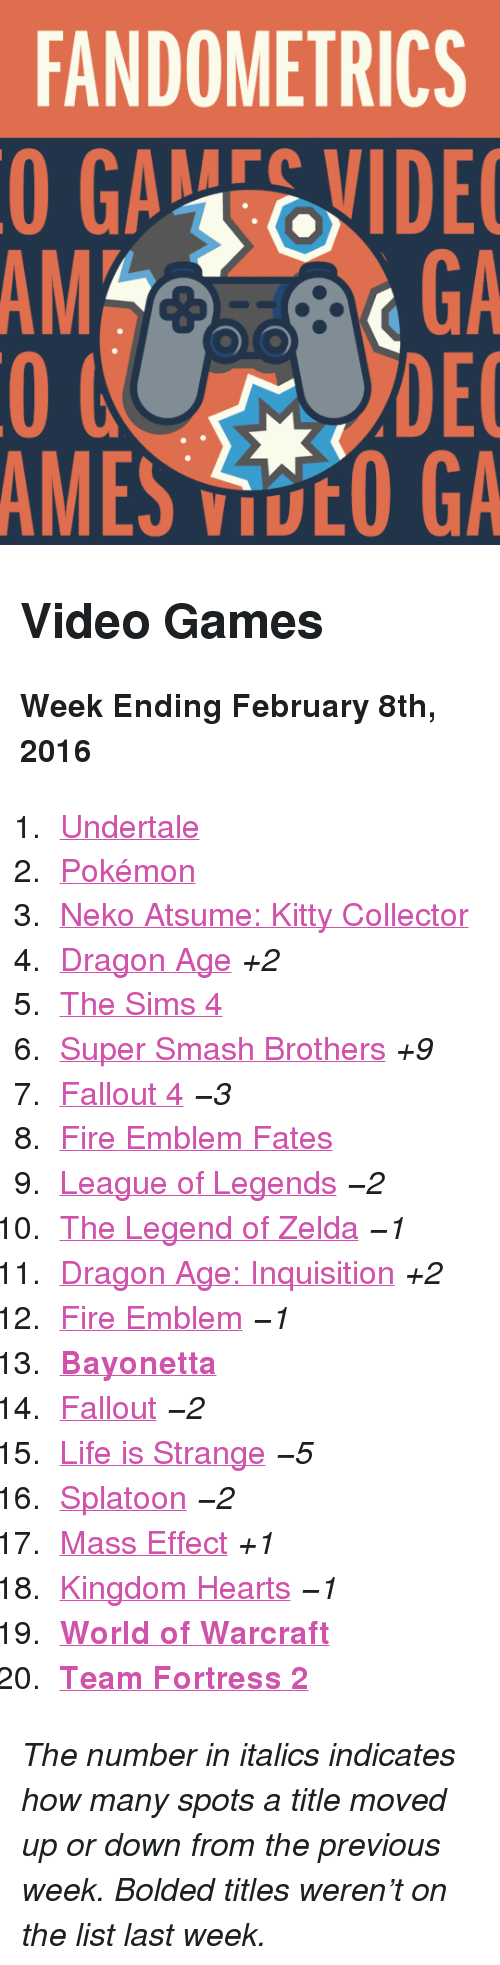 """Bayonetta: FANDOMETRICS  GAEVIDE  GA  DEC  AMES VOO GA  AM <h2>Video Games</h2><p><b>Week Ending February 8th, 2016</b></p><ol><li><a href=""""http://www.tumblr.com/search/undertale"""">Undertale</a></li>  <li><a href=""""http://www.tumblr.com/search/pokemon"""">Pokémon</a></li>  <li><a href=""""http://www.tumblr.com/search/neko%20atsume"""">Neko Atsume: Kitty Collector</a></li>  <li><a href=""""http://www.tumblr.com/search/dragon%20age"""">Dragon Age</a><i>+2</i></li>  <li><a href=""""http://www.tumblr.com/search/sims%204"""">The Sims 4</a></li>  <li><a href=""""http://www.tumblr.com/search/super%20smash%20bros"""">Super Smash Brothers</a><i>+9</i></li>  <li><a href=""""http://www.tumblr.com/search/fallout%204"""">Fallout 4</a><i>−3</i></li>  <li><a href=""""http://www.tumblr.com/search/fire%20emblem%20fates"""">Fire Emblem Fates</a></li>  <li><a href=""""http://www.tumblr.com/search/league%20of%20legends"""">League of Legends</a><i>−2</i></li>  <li><a href=""""http://www.tumblr.com/search/legend%20of%20zelda"""">The Legend of Zelda</a><i>−1</i></li>  <li><a href=""""http://www.tumblr.com/search/dragon%20age%20inquisition"""">Dragon Age: Inquisition</a><i>+2</i></li>  <li><a href=""""http://www.tumblr.com/search/fire%20emblem"""">Fire Emblem</a><i>−1</i></li>  <li><a href=""""http://www.tumblr.com/search/bayonetta""""><b>Bayonetta</b></a></li>  <li><a href=""""http://www.tumblr.com/search/fallout"""">Fallout</a><i>−2</i></li>  <li><a href=""""http://www.tumblr.com/search/life%20is%20strange"""">Life is Strange</a><i>−5</i></li>  <li><a href=""""http://www.tumblr.com/search/splatoon"""">Splatoon</a><i>−2</i></li>  <li><a href=""""http://www.tumblr.com/search/mass%20effect"""">Mass Effect</a><i>+1</i></li>  <li><a href=""""http://www.tumblr.com/search/kingdom%20hearts"""">Kingdom Hearts</a><i>−1</i></li>  <li><a href=""""http://www.tumblr.com/search/world%20of%20warcraft""""><b>World of Warcraft</b></a></li>  <li><a href=""""http://www.tumblr.com/search/tf2""""><b>Team Fortress 2</b></a></li></ol><p><i>The number in italics indicates how many spots a title moved up or down from the pr"""